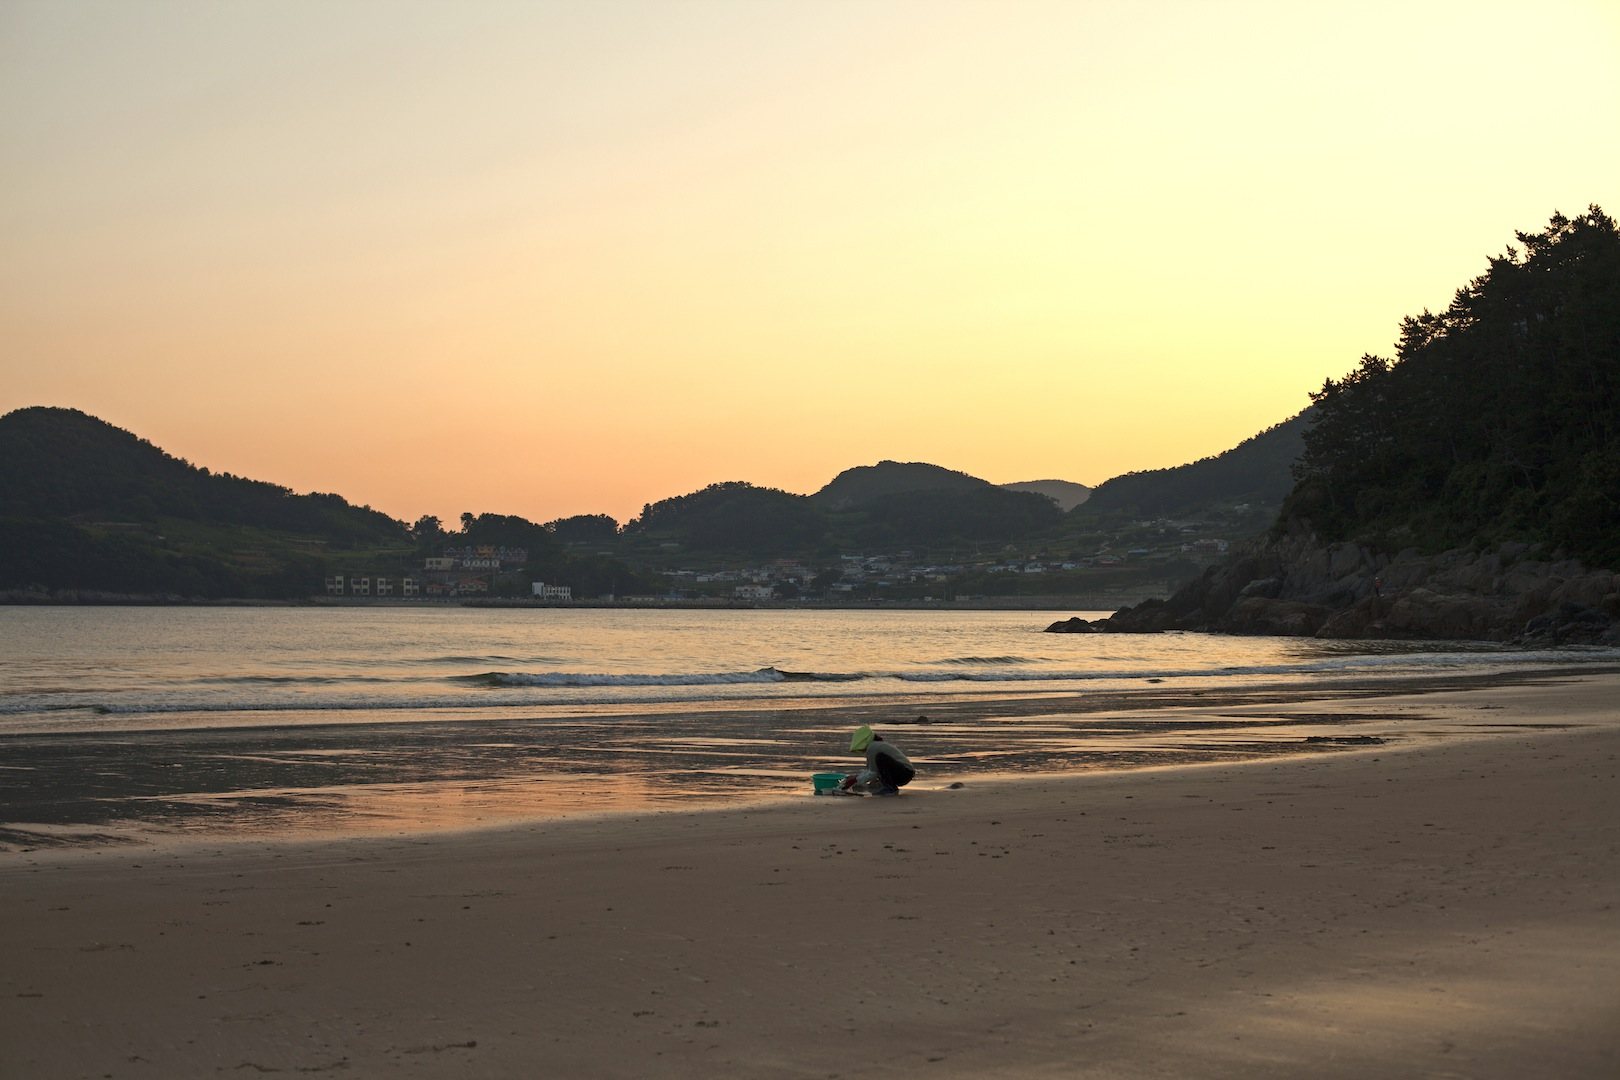 Camping in Namhae